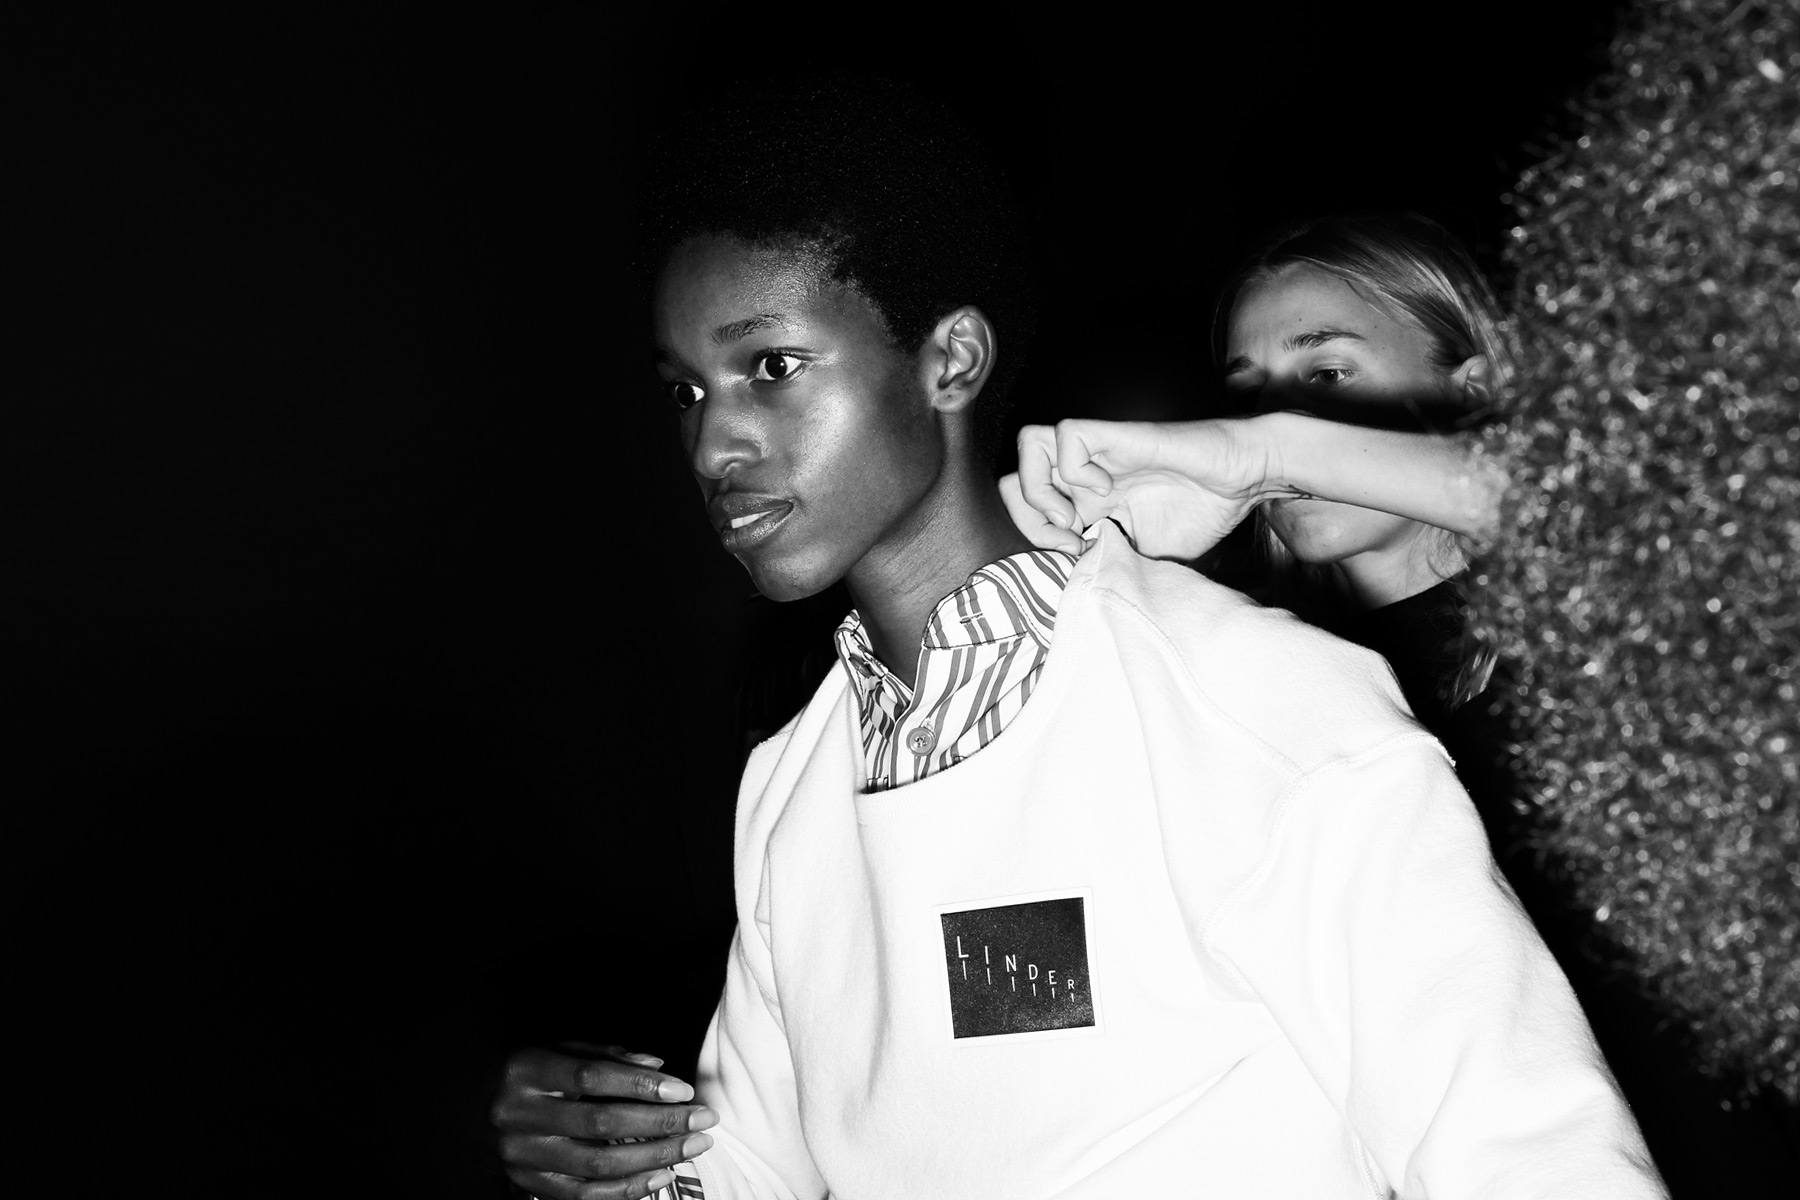 A model gets dressed backstage at the Linder Spring/Summer 2019 collection, photographed by Alexander Thompson for Ponyboy magazine.